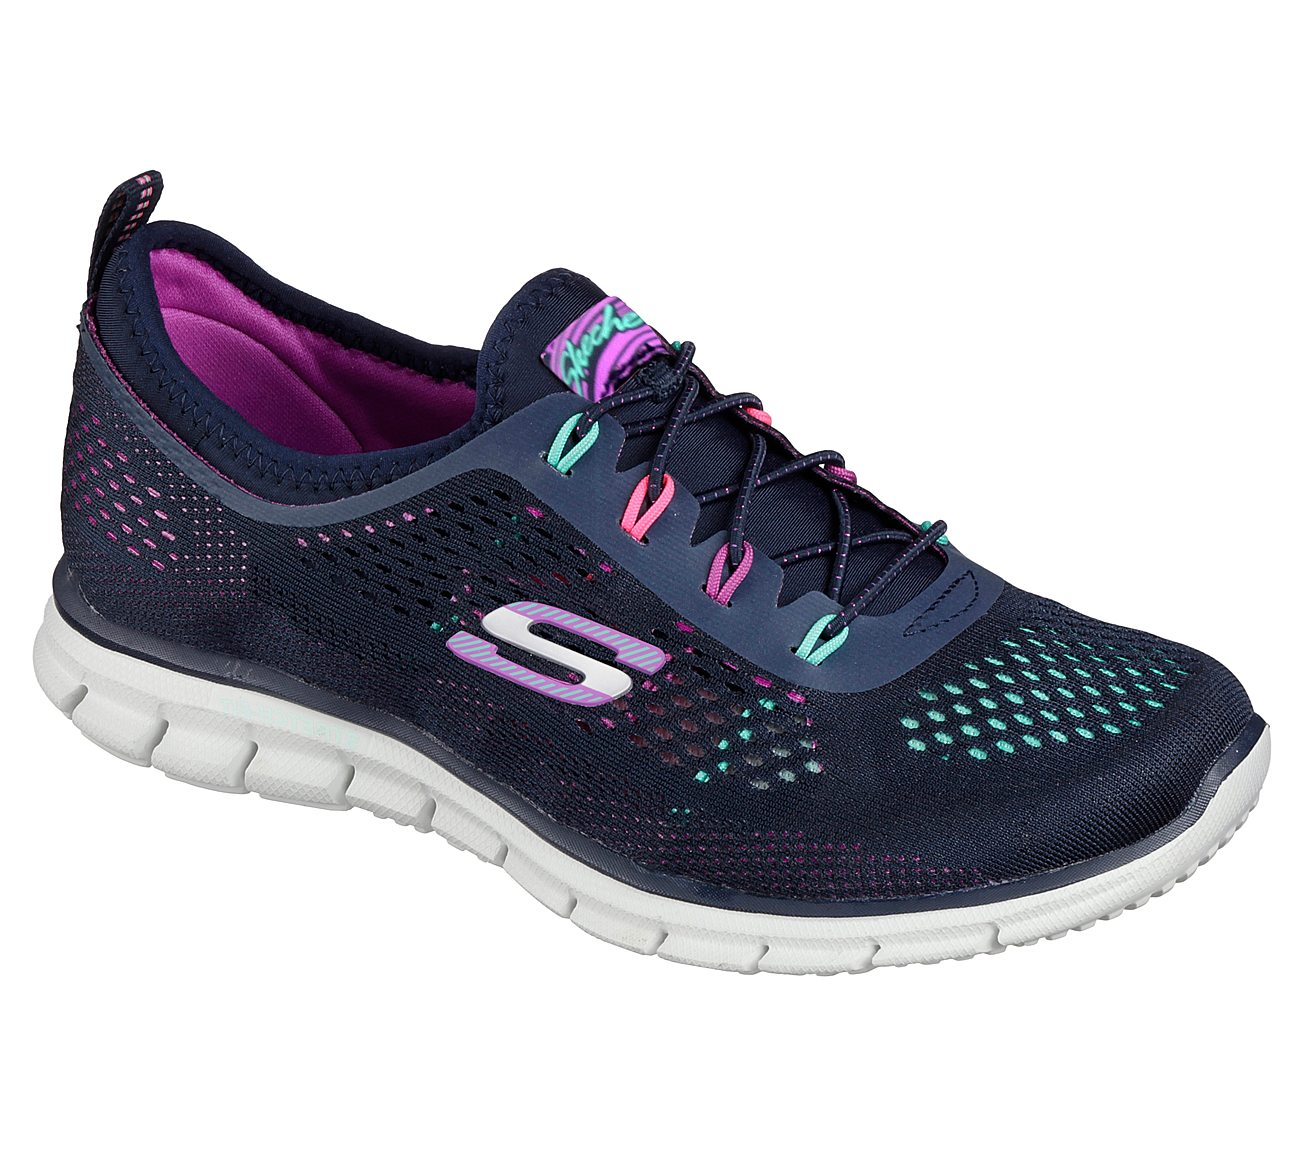 92124c43d6b1 Buy SKECHERS Stretch Fit  Glider Sport Active Shoes only  80.00